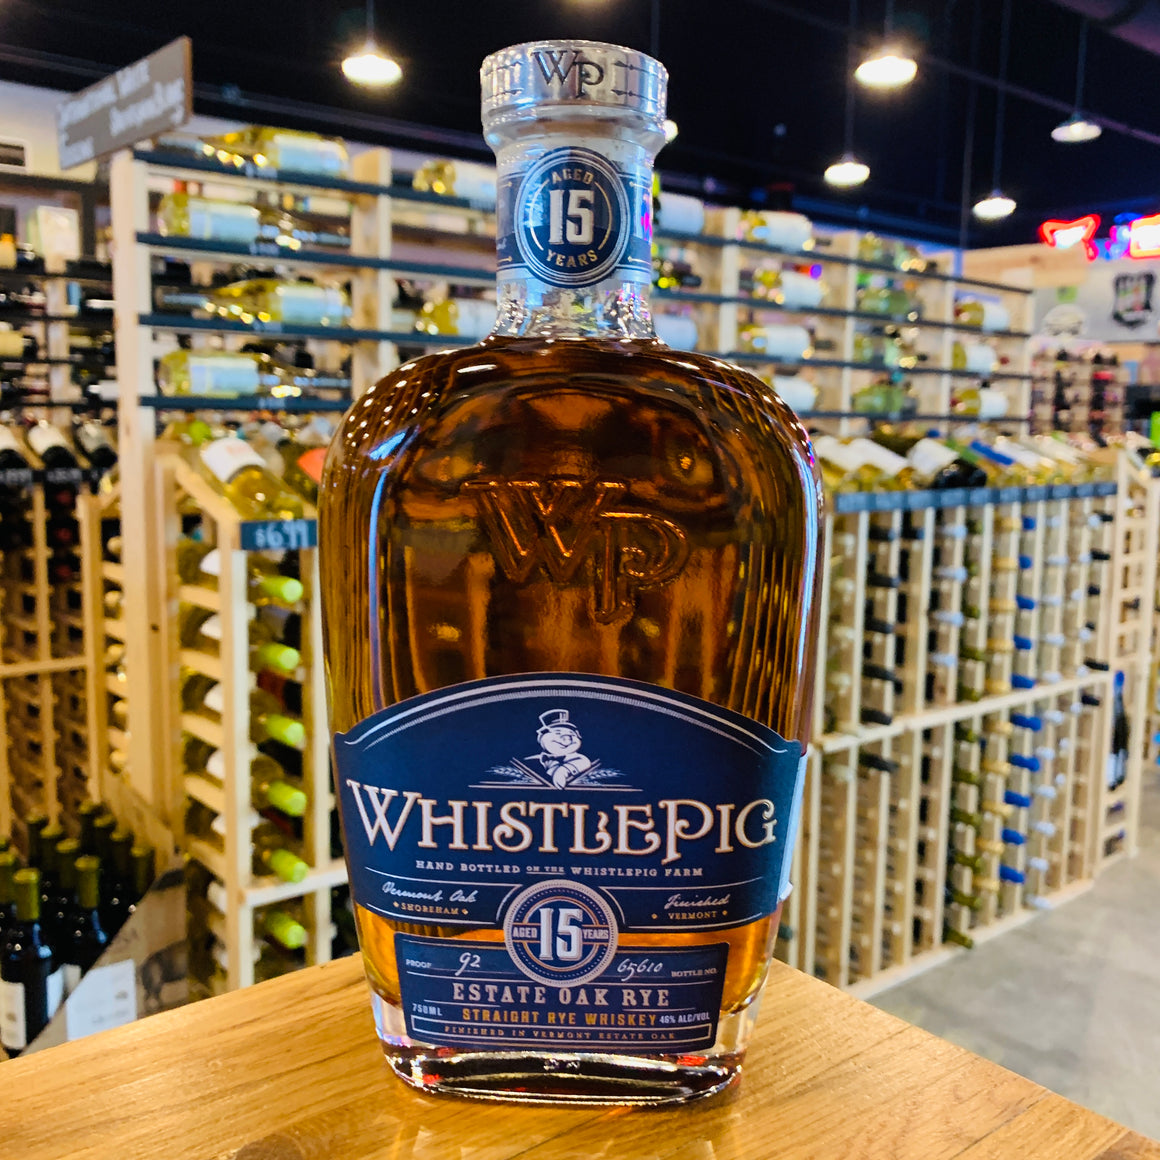 WHISTLEPIG 15 YEAR STRAIGHT RYE WHISKEY 750ML